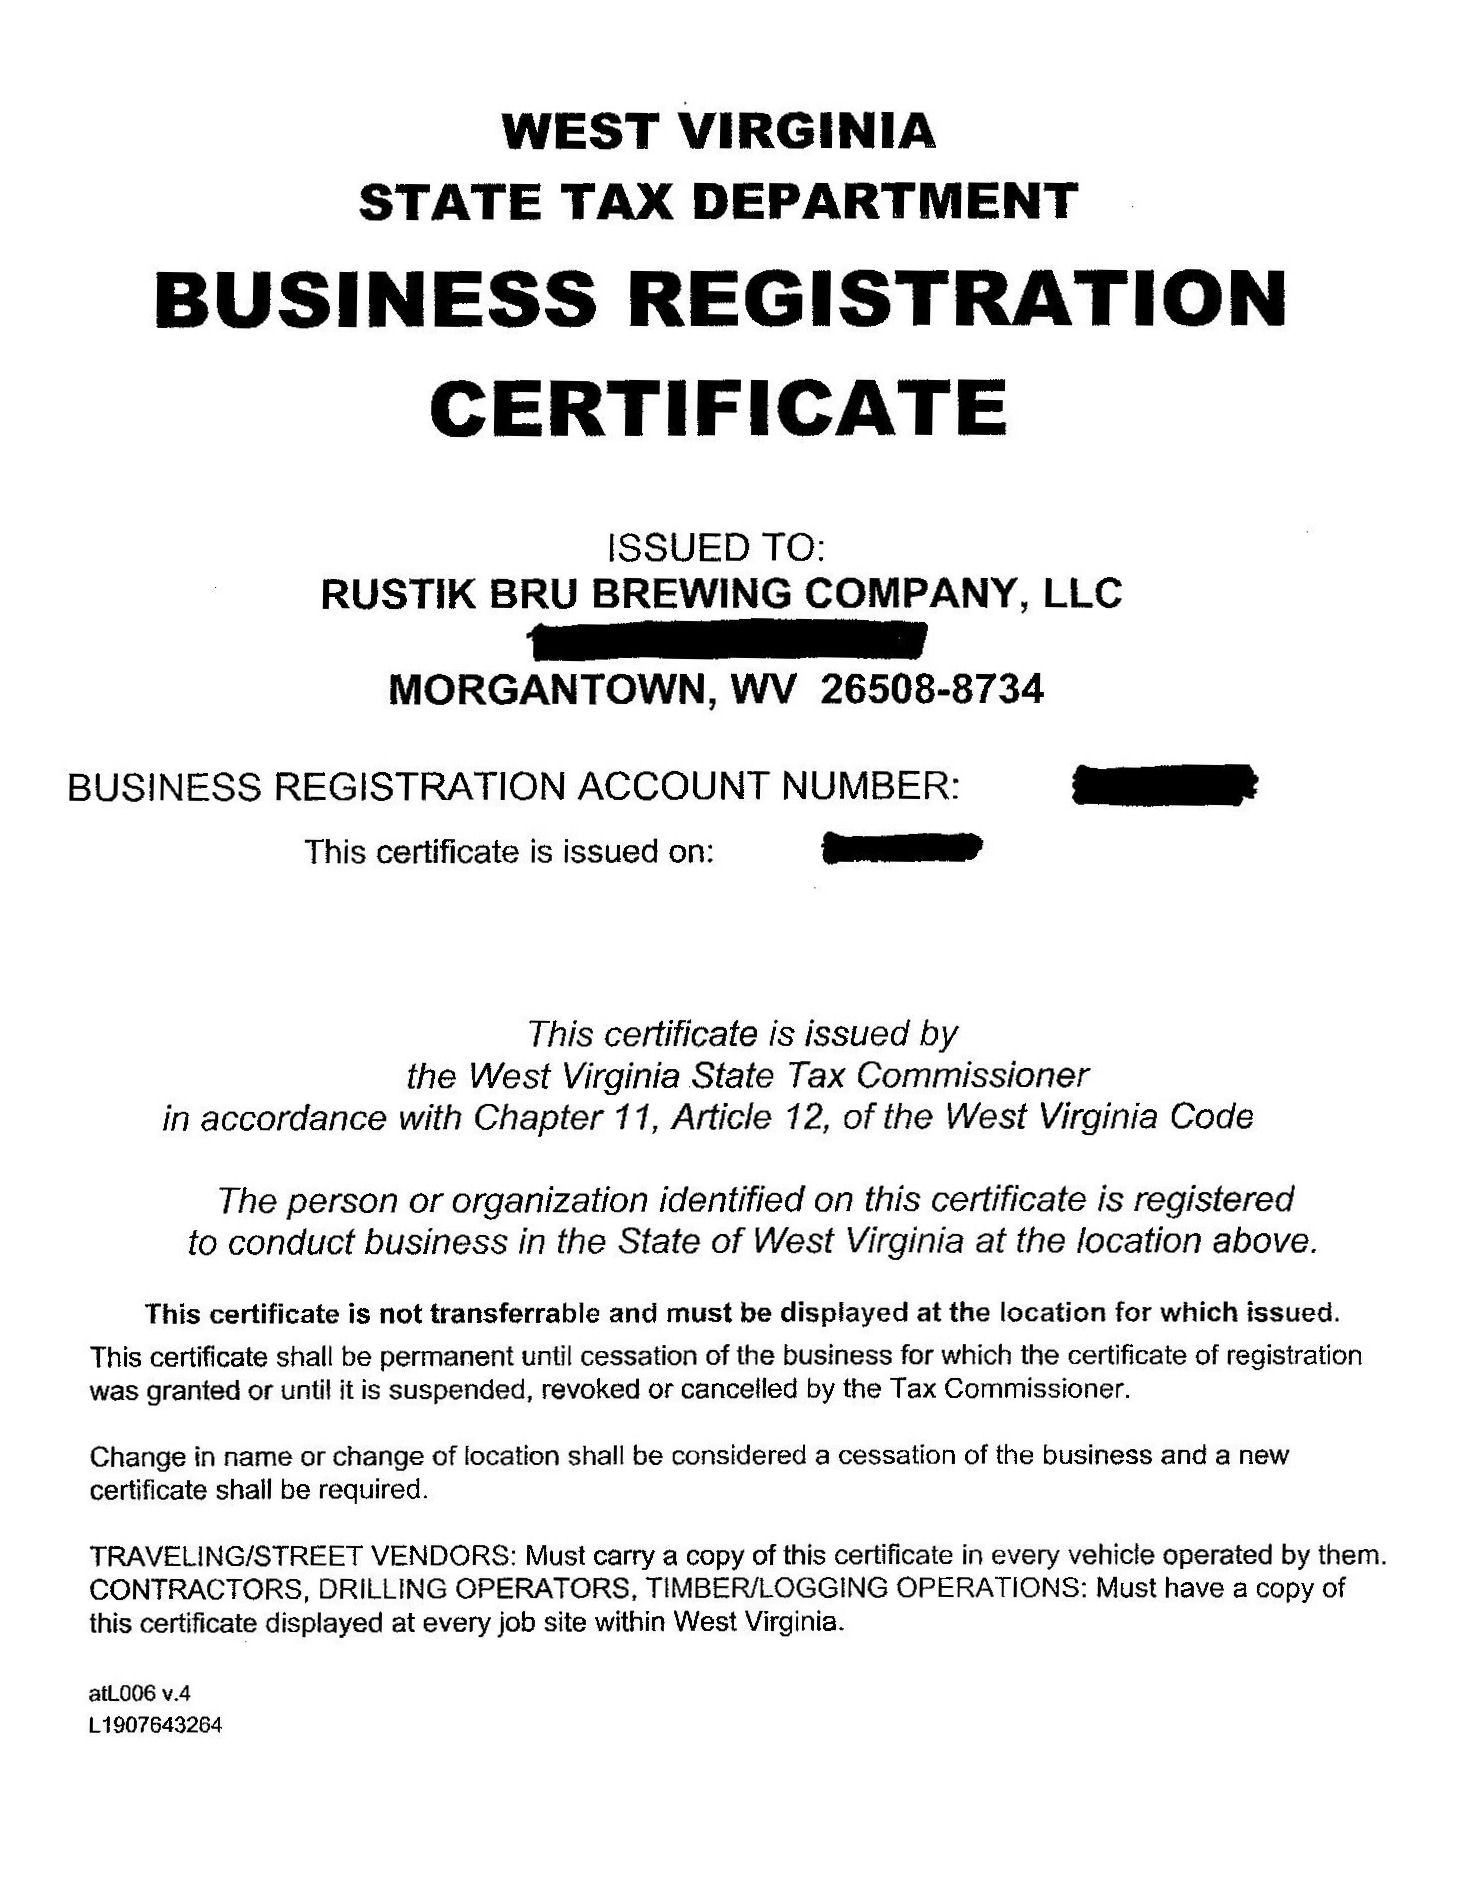 Business License and State Tax | Rustik Brü Blog – A Morgantown